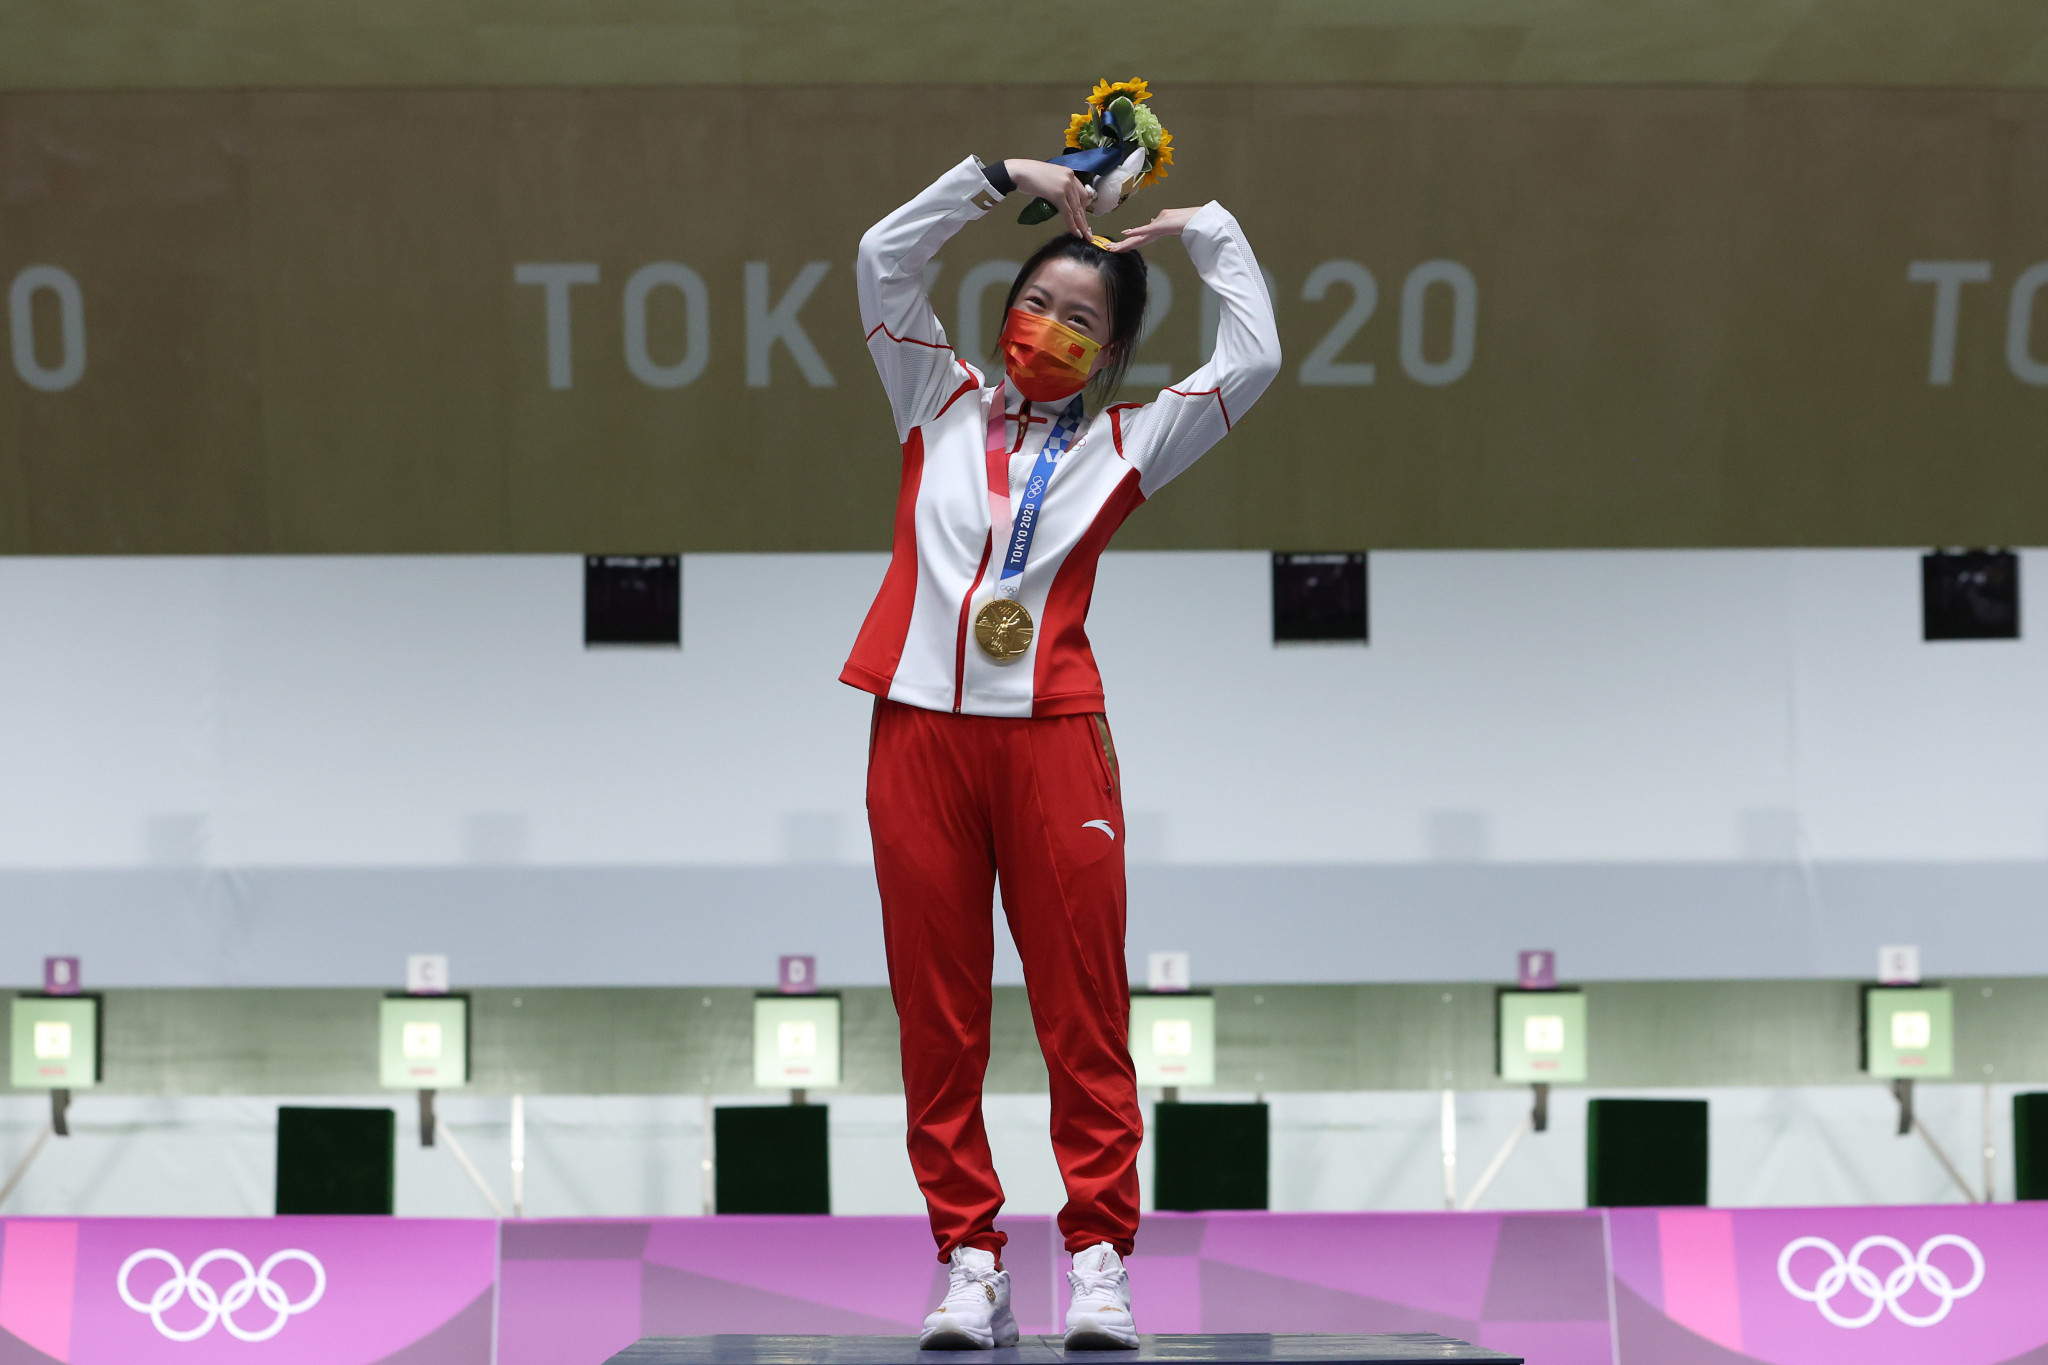 Champion Qian Yang of China poses at the top of the podium during the women's 10-metre air rifle medal ceremony ©Getty Images